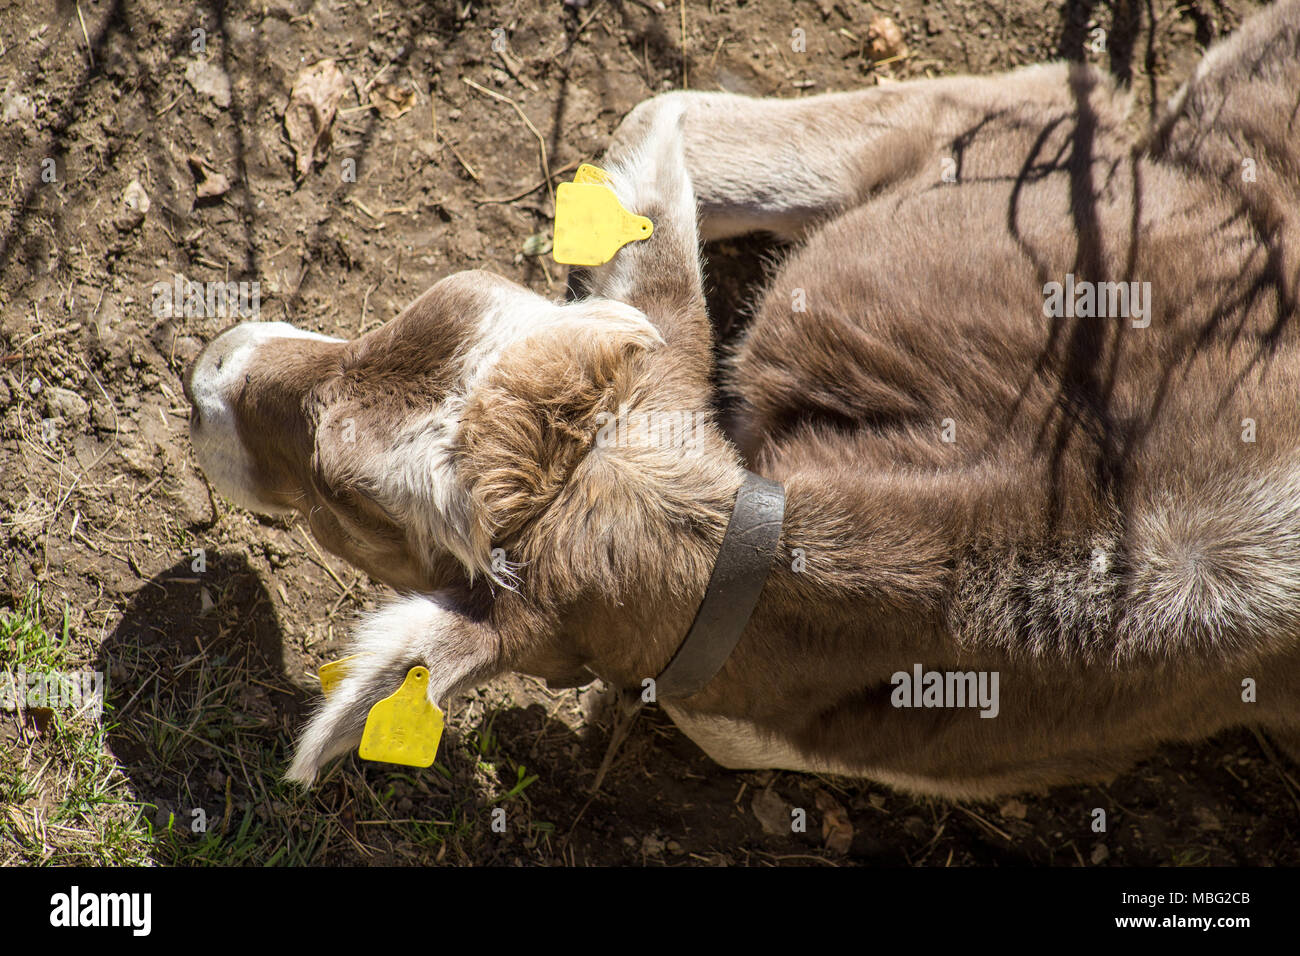 Resting cow from above - Stock Image